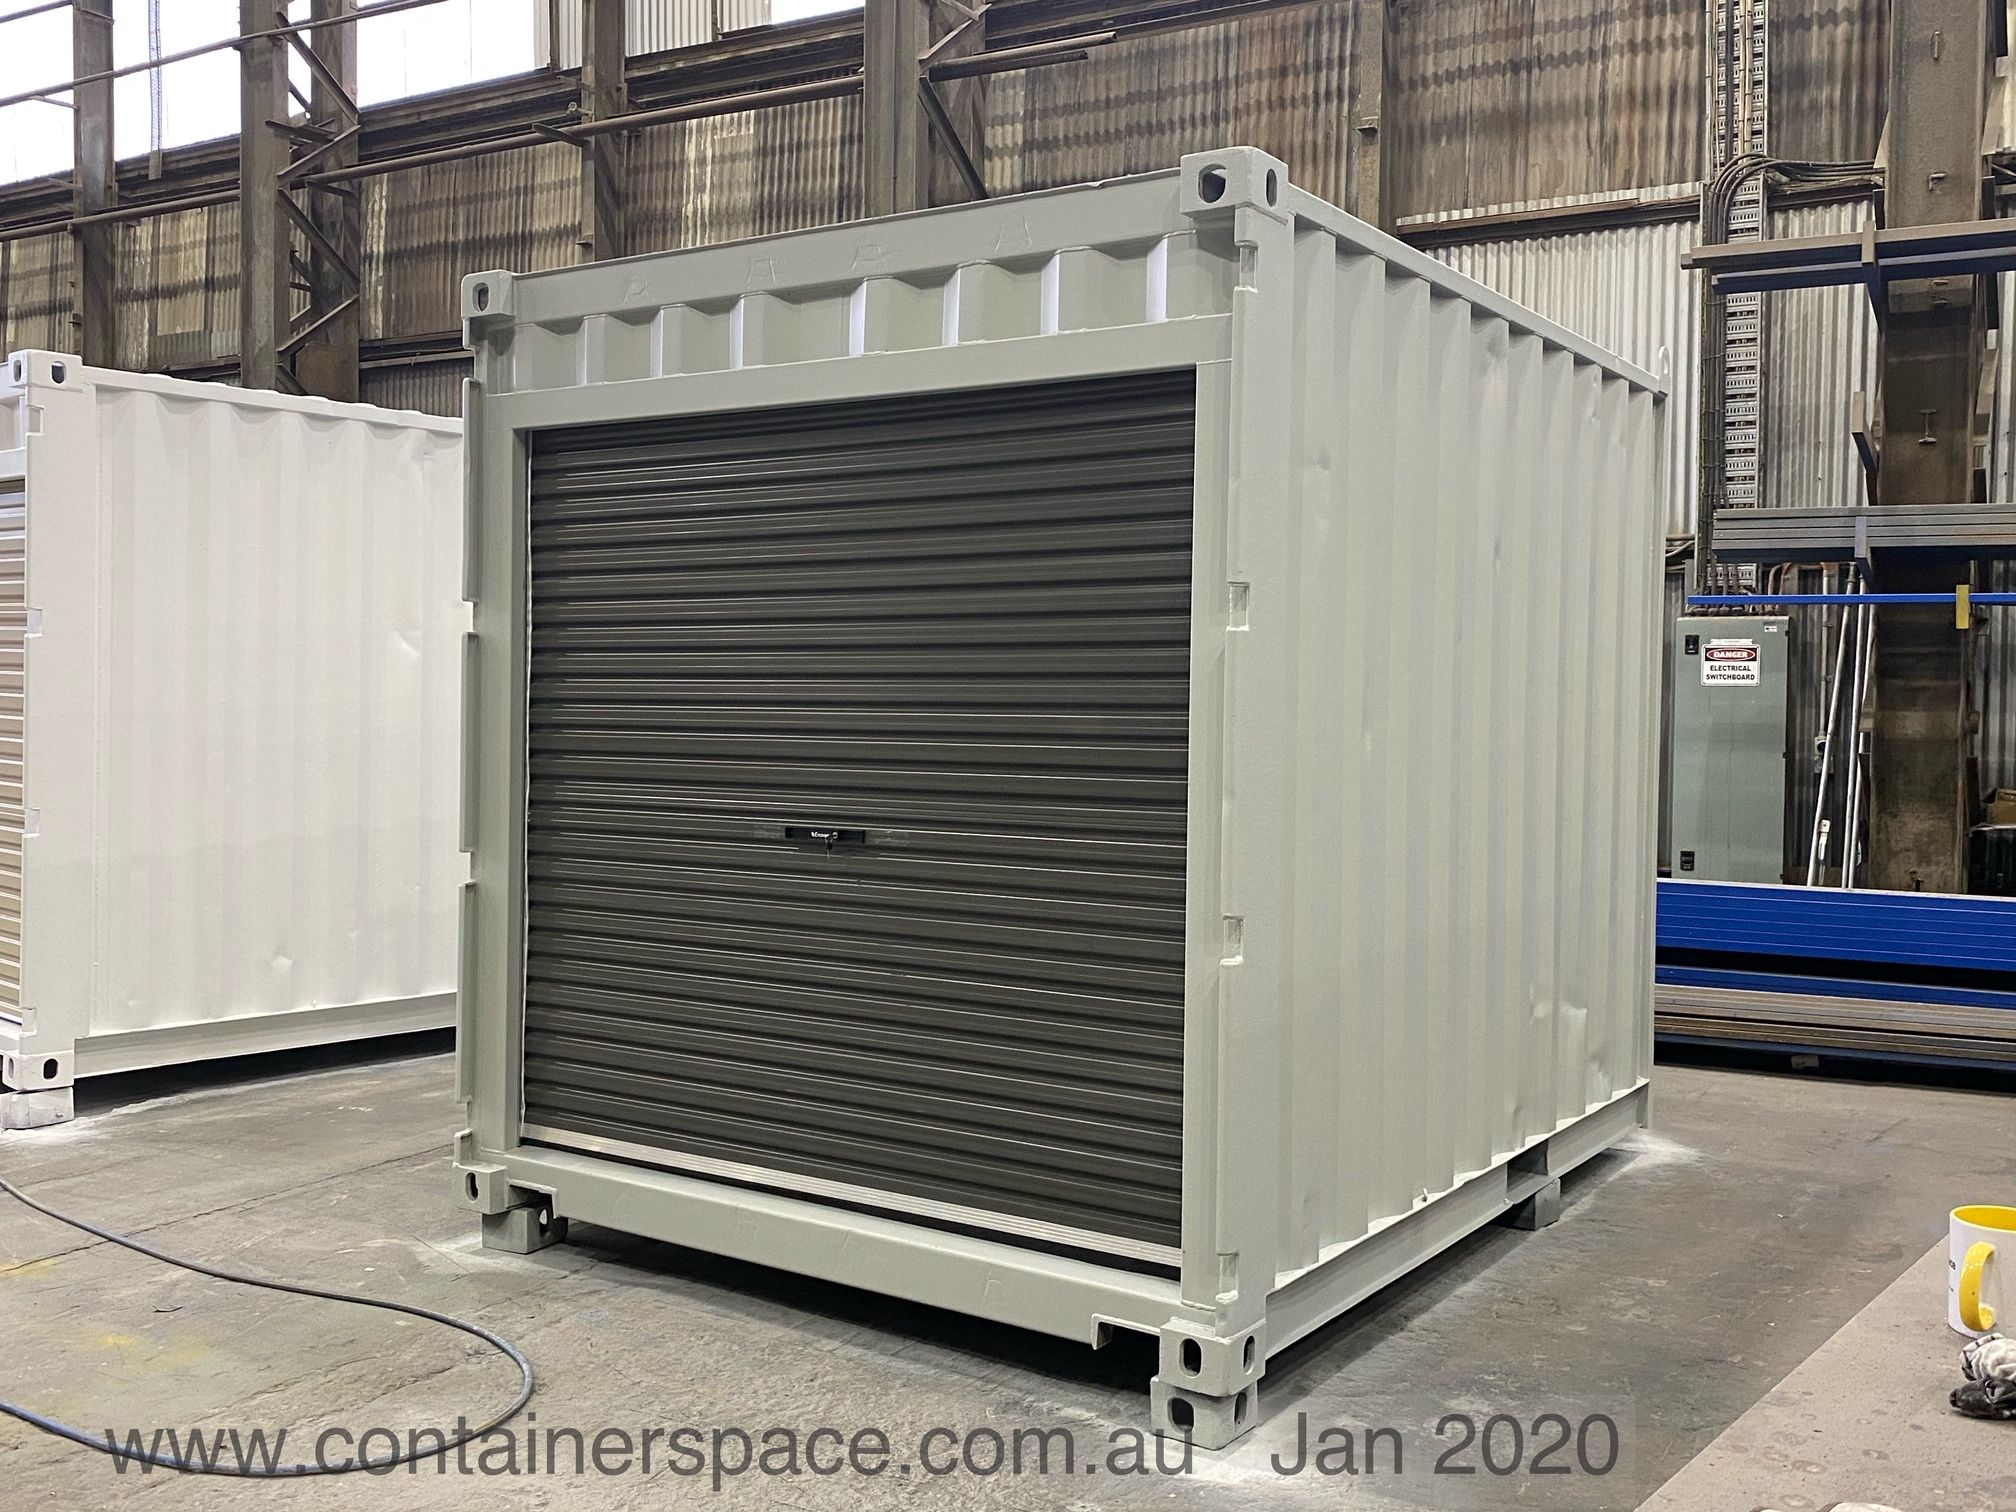 10 Ft Long And 8 Ft High With Rollup Door On Sale Call For Other Sizes Container House Shipping Container Sheds Shipping Container Homes